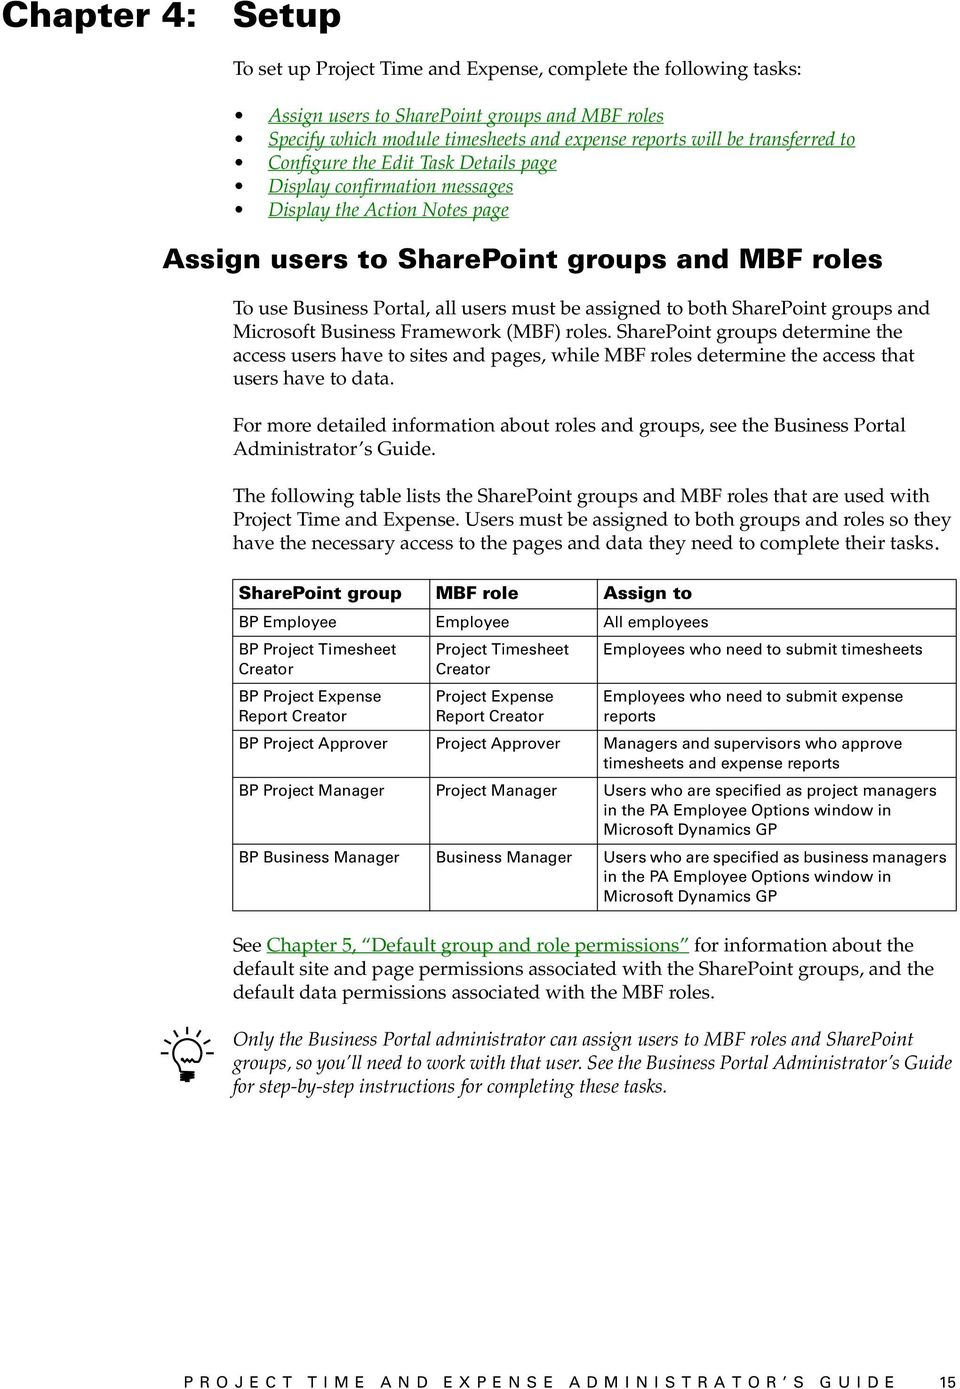 be assigned to both SharePoint groups and Microsoft Business Framework (MBF) roles.